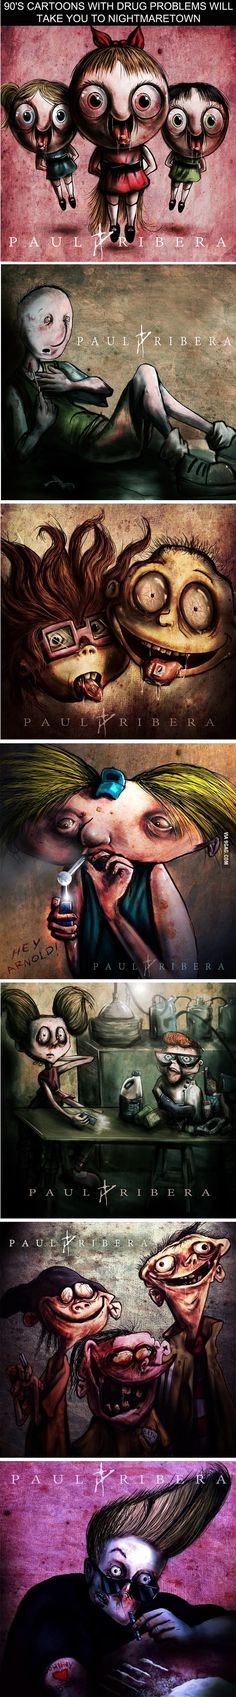 Cartoons With Drug Problems Will Take You to Nightmaretown - Just DWL Cartoon Pics, Cartoon Art, Childhood Ruined, Twisted Disney, 90s Cartoons, Creepy Art, Geek Culture, Best Funny Pictures, Weird Pictures